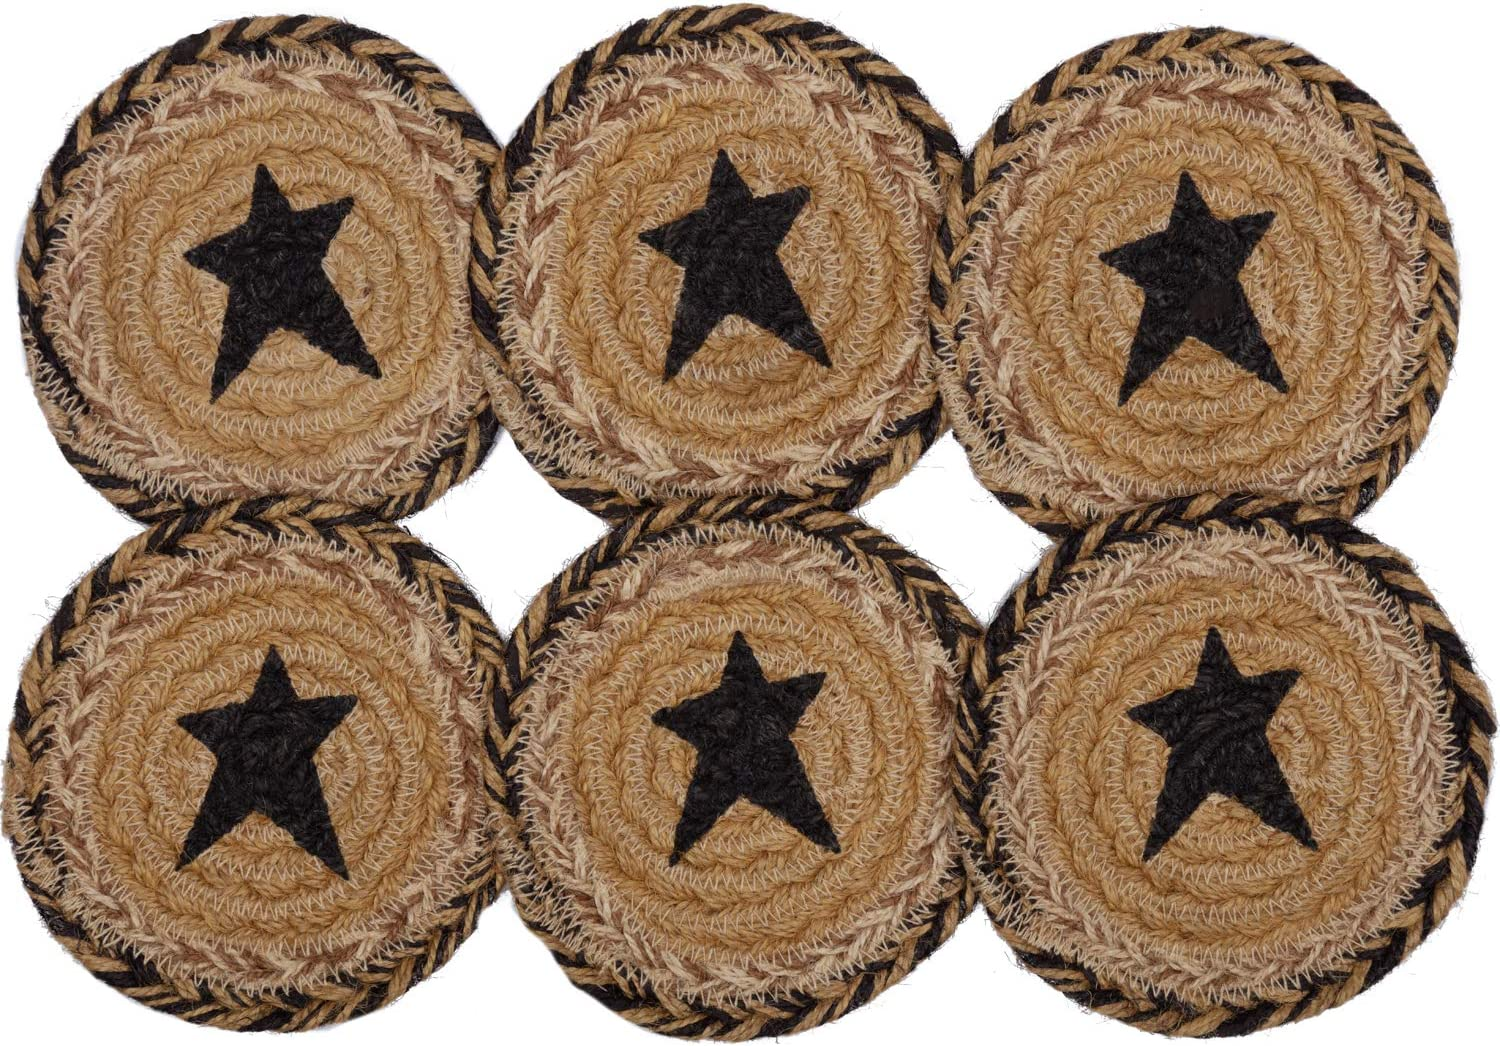 Pine Valley Quilts VHC Brands Primitive Tabletop Kitchen Prim Grove Star Jute Stenciled Round Coaster Set of 6, Natural Tan